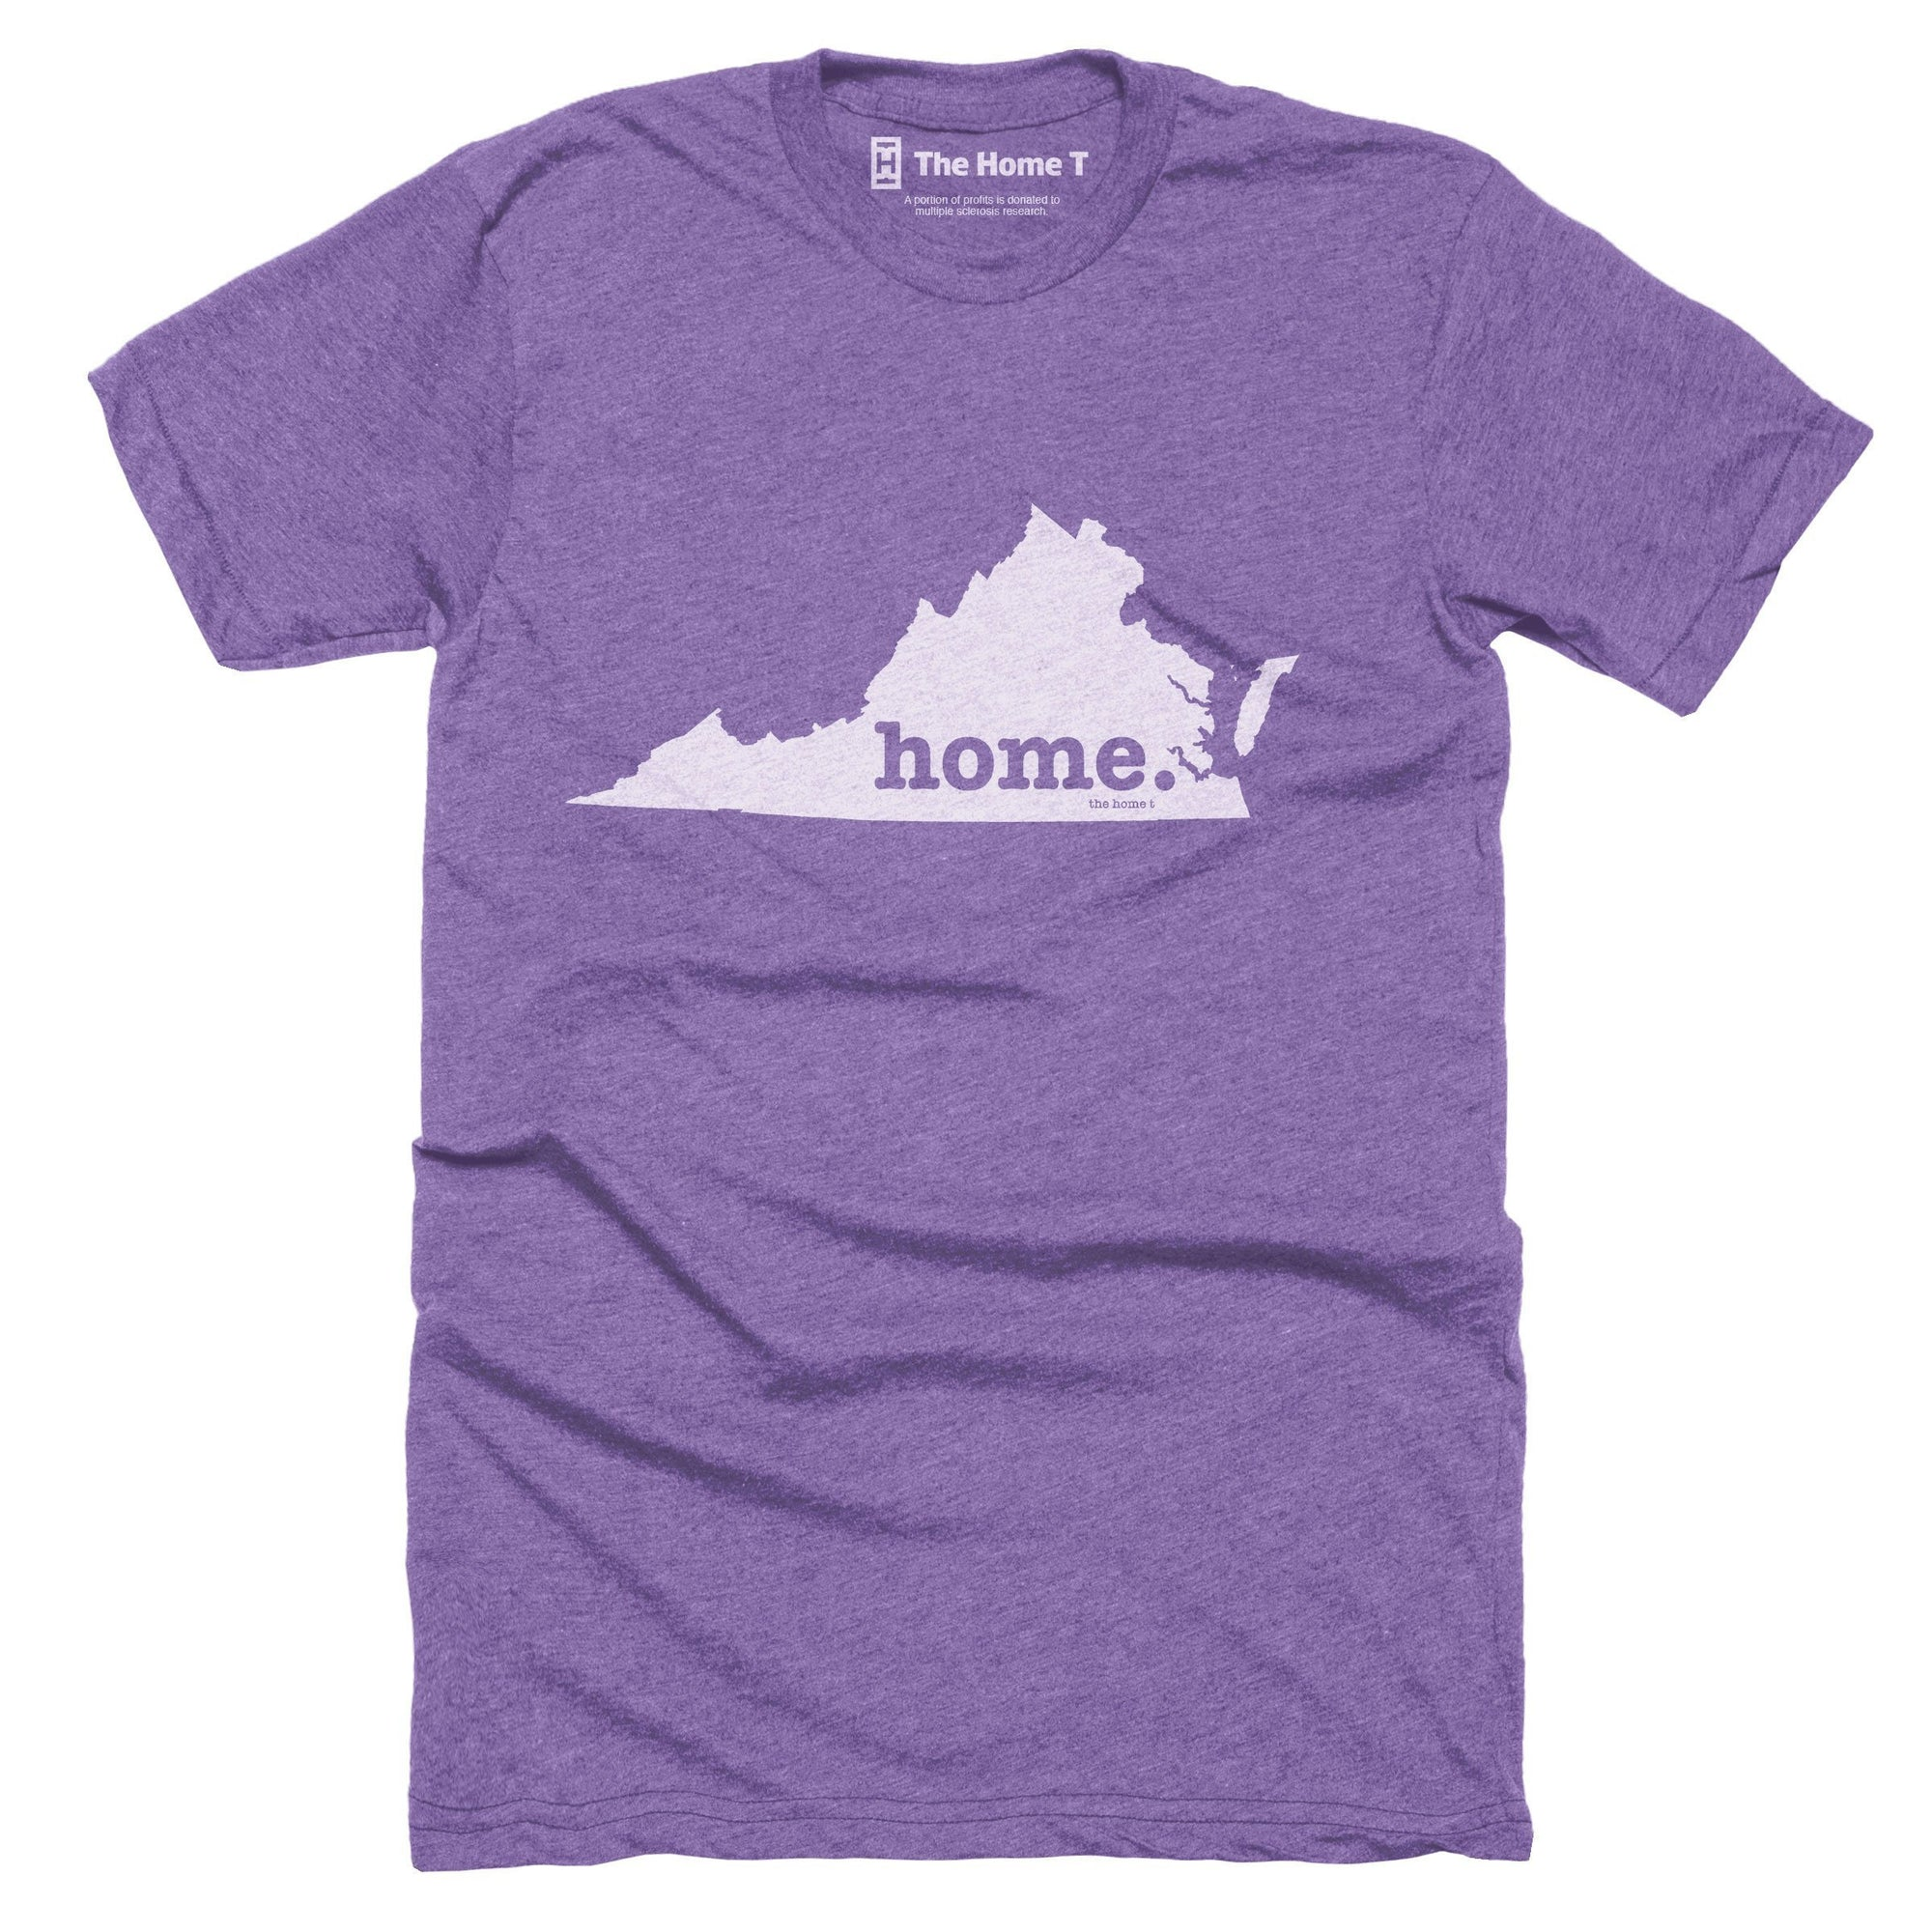 Virginia Purple Limited Edition